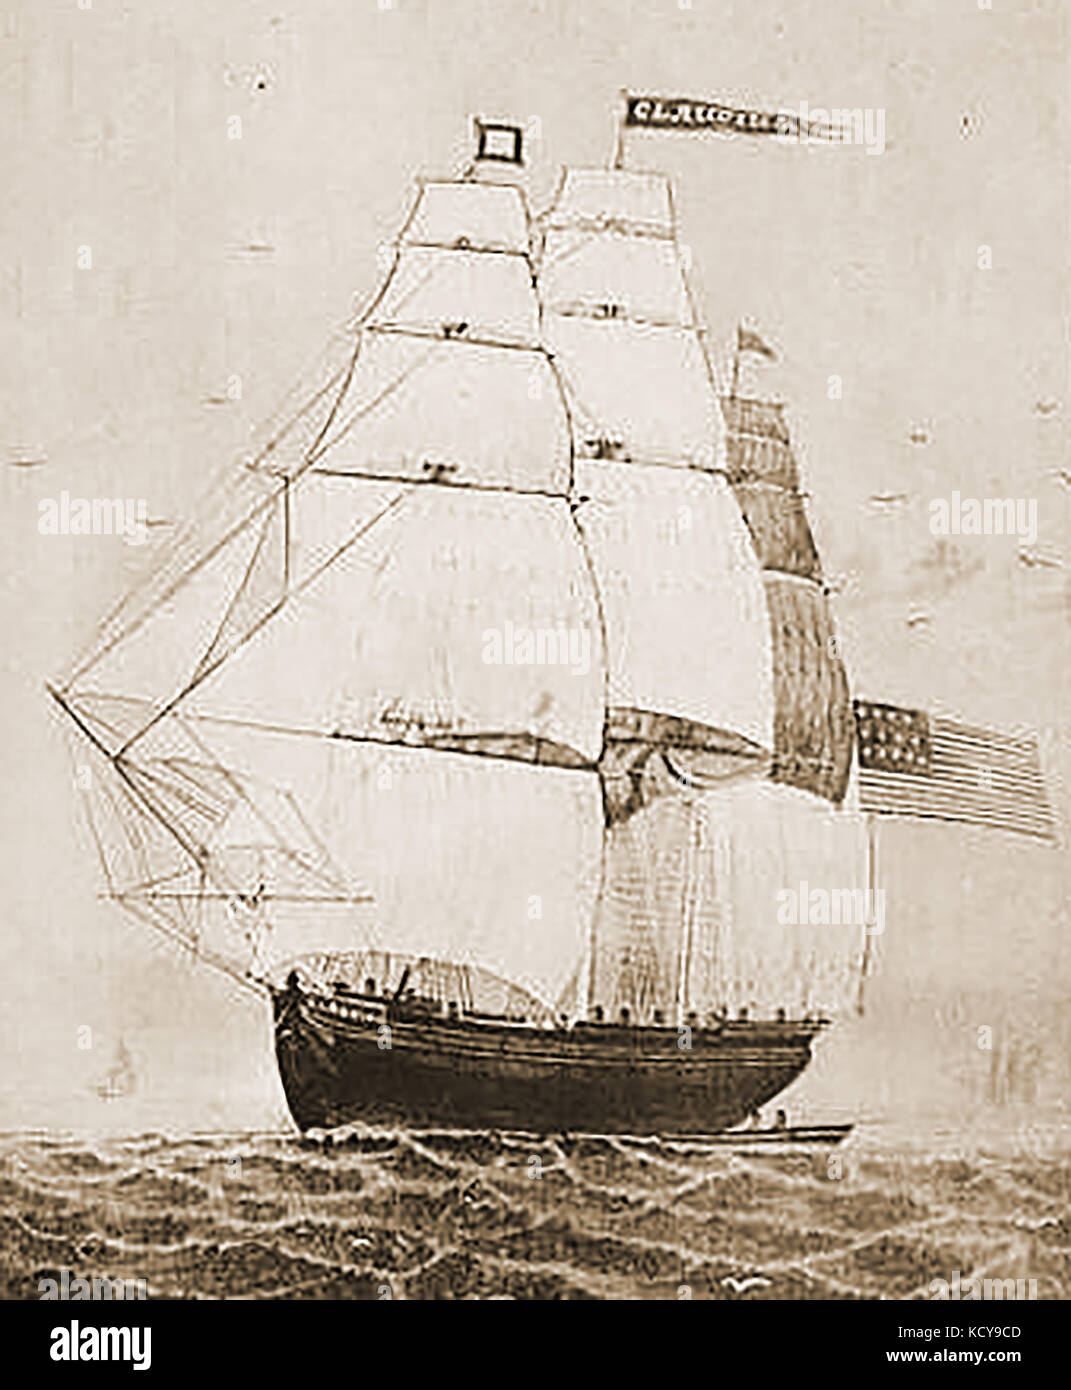 he US built ship CLAUDIUS - Constructed at Medford by P & J O Curtis in 1836 - Stock Image